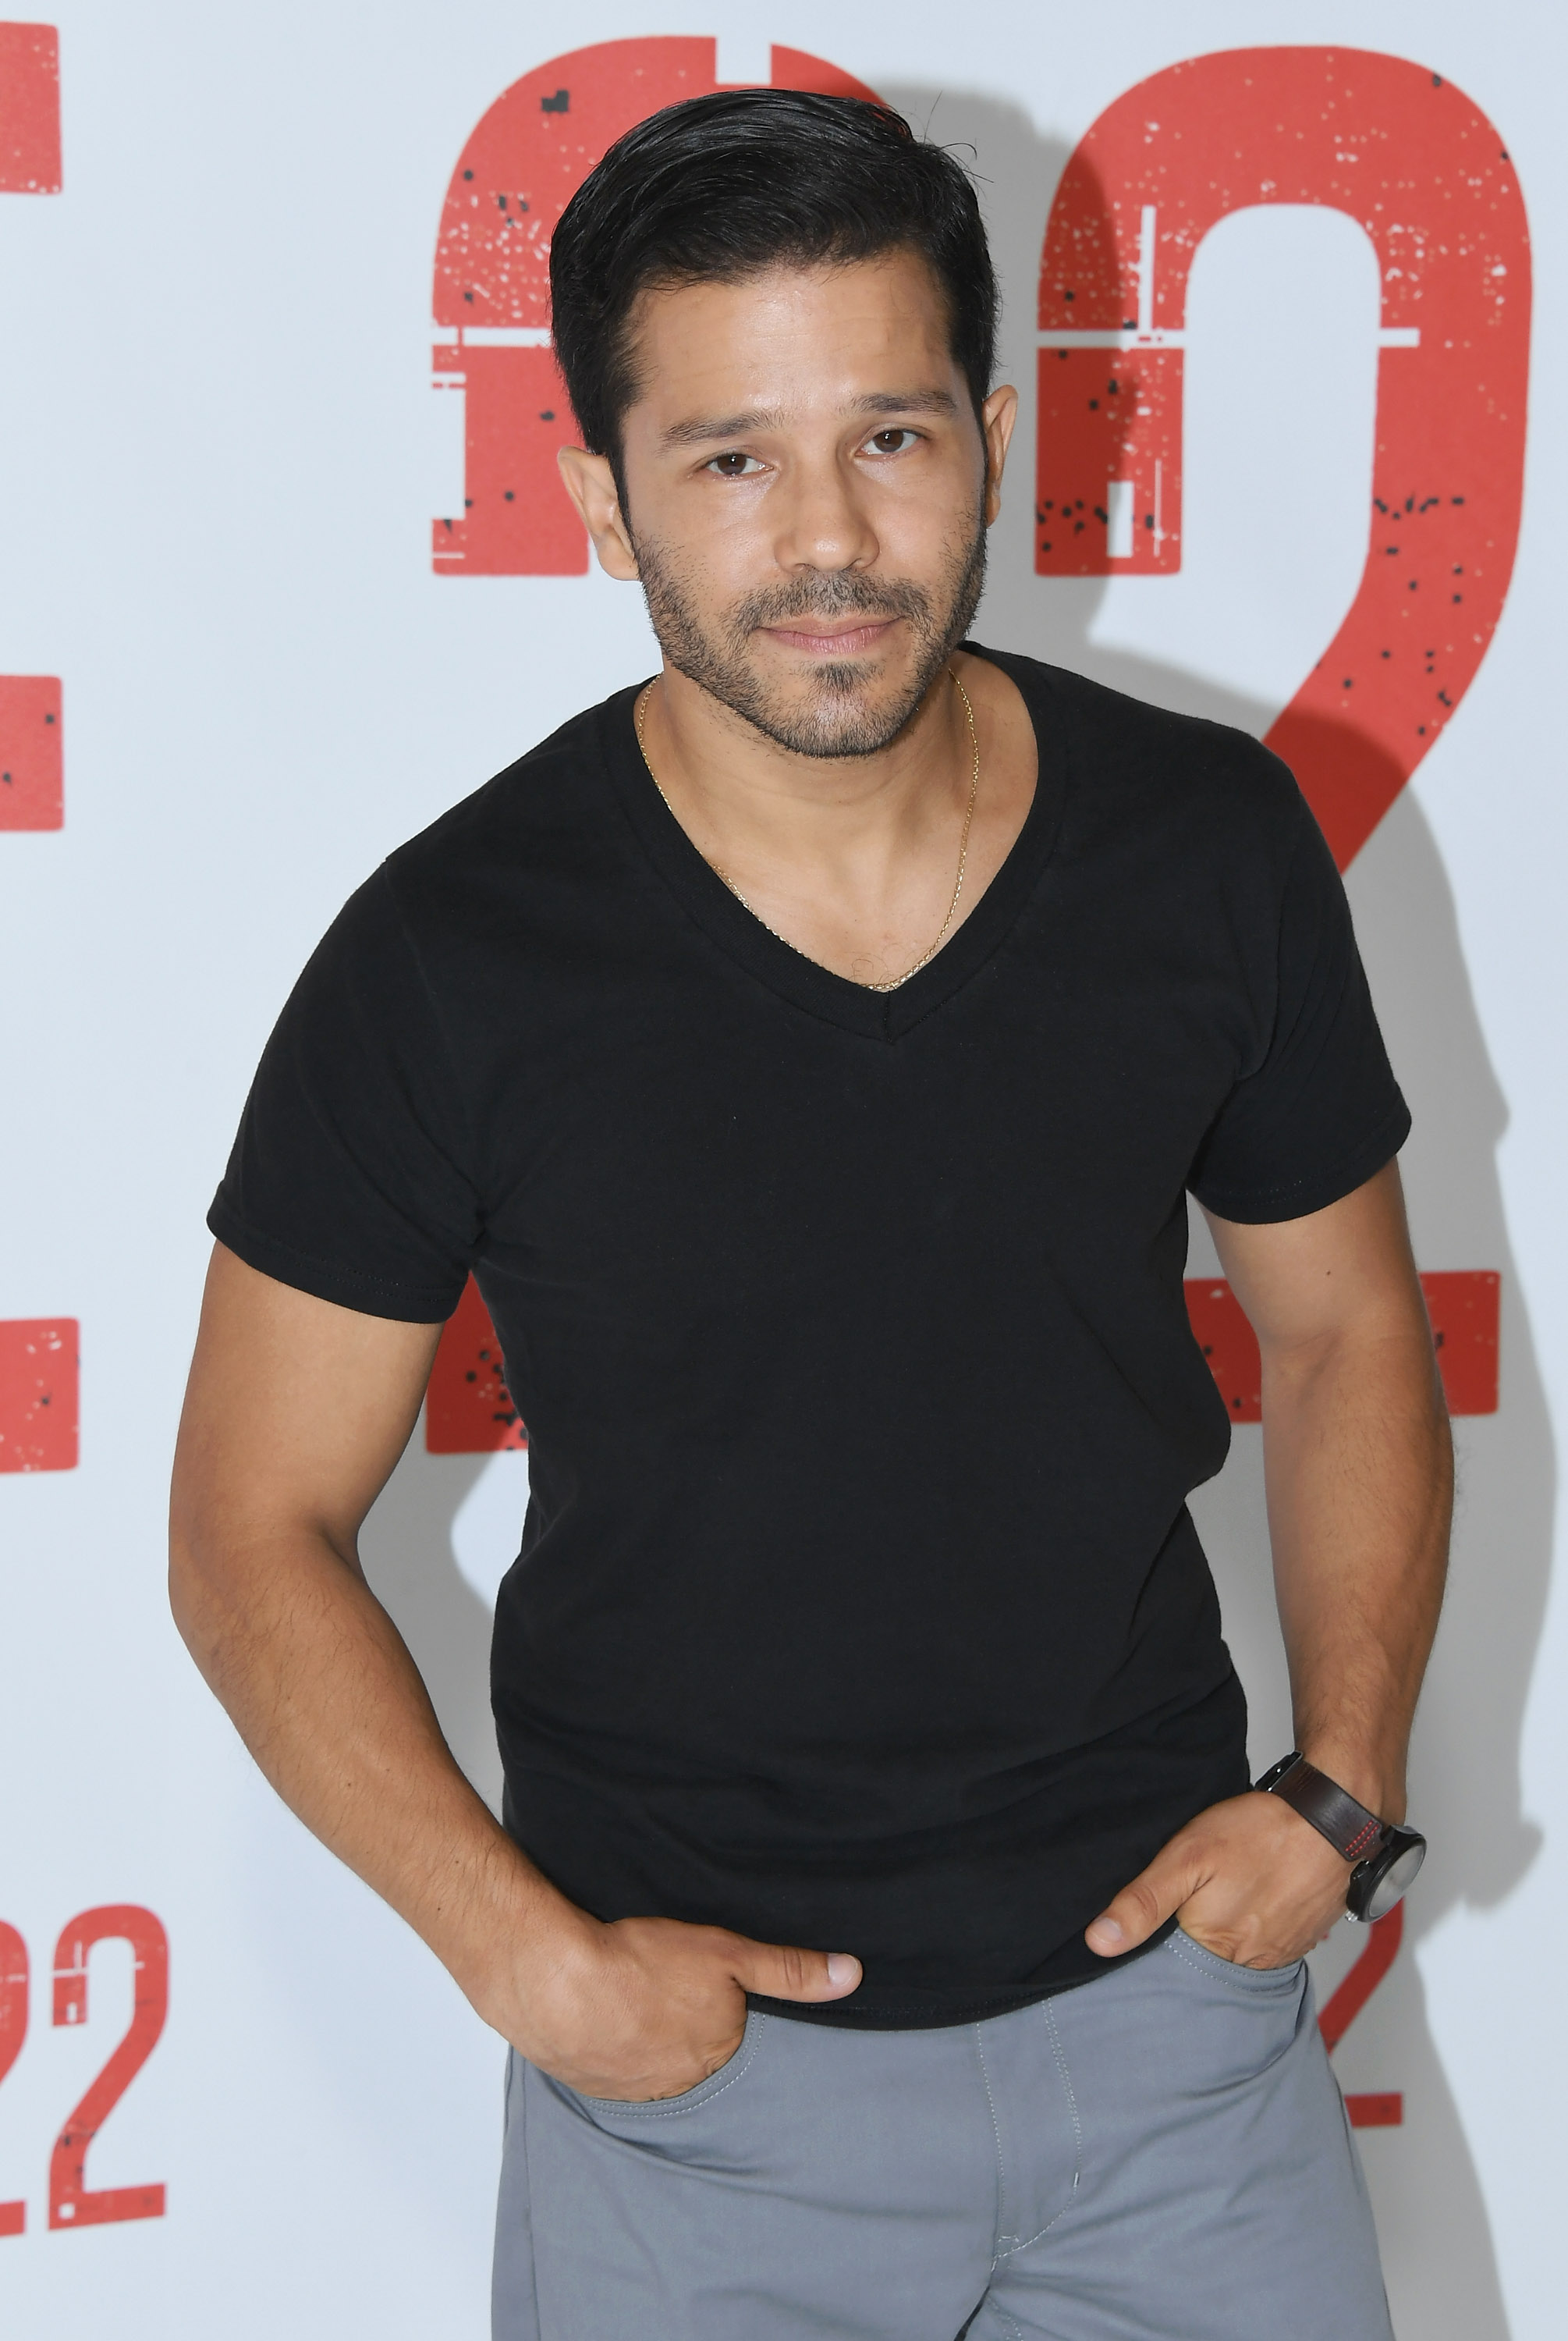 """Los Angeles Photo Call For STXfilms' """"Mile 22"""""""